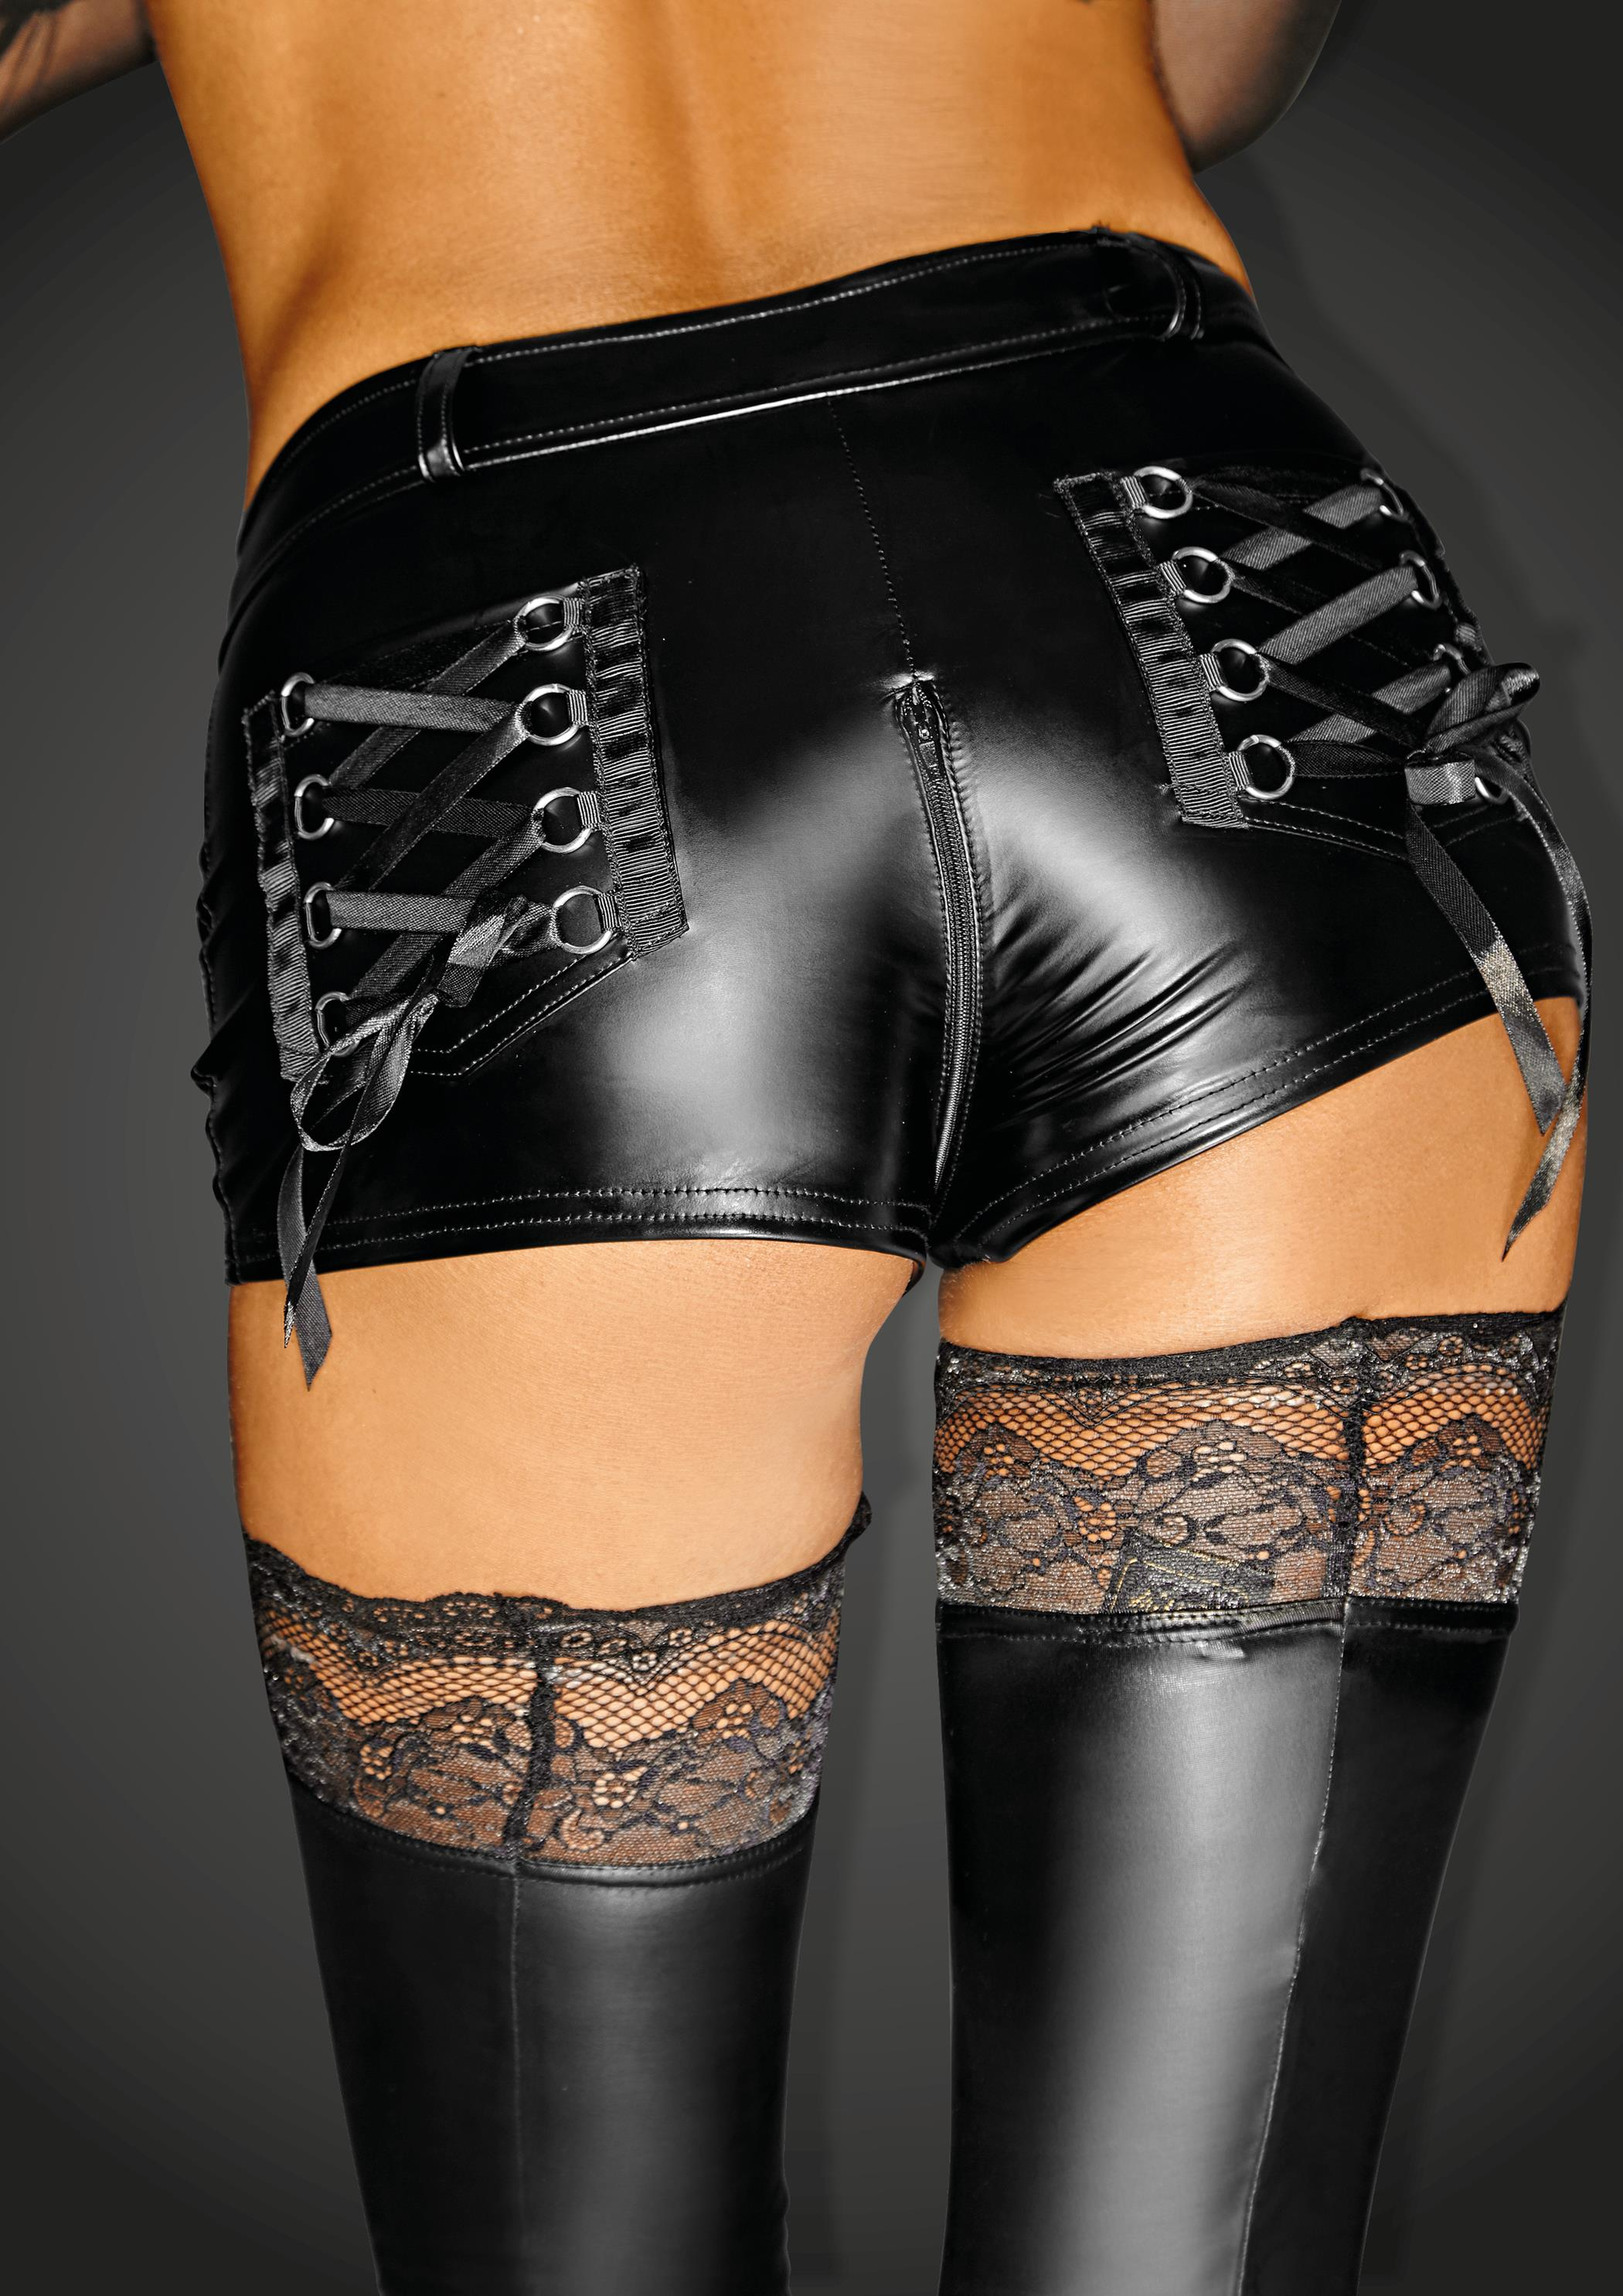 F138 Powerwetlook shorts with 2- way zipper and back pockets with lacing SELFISH